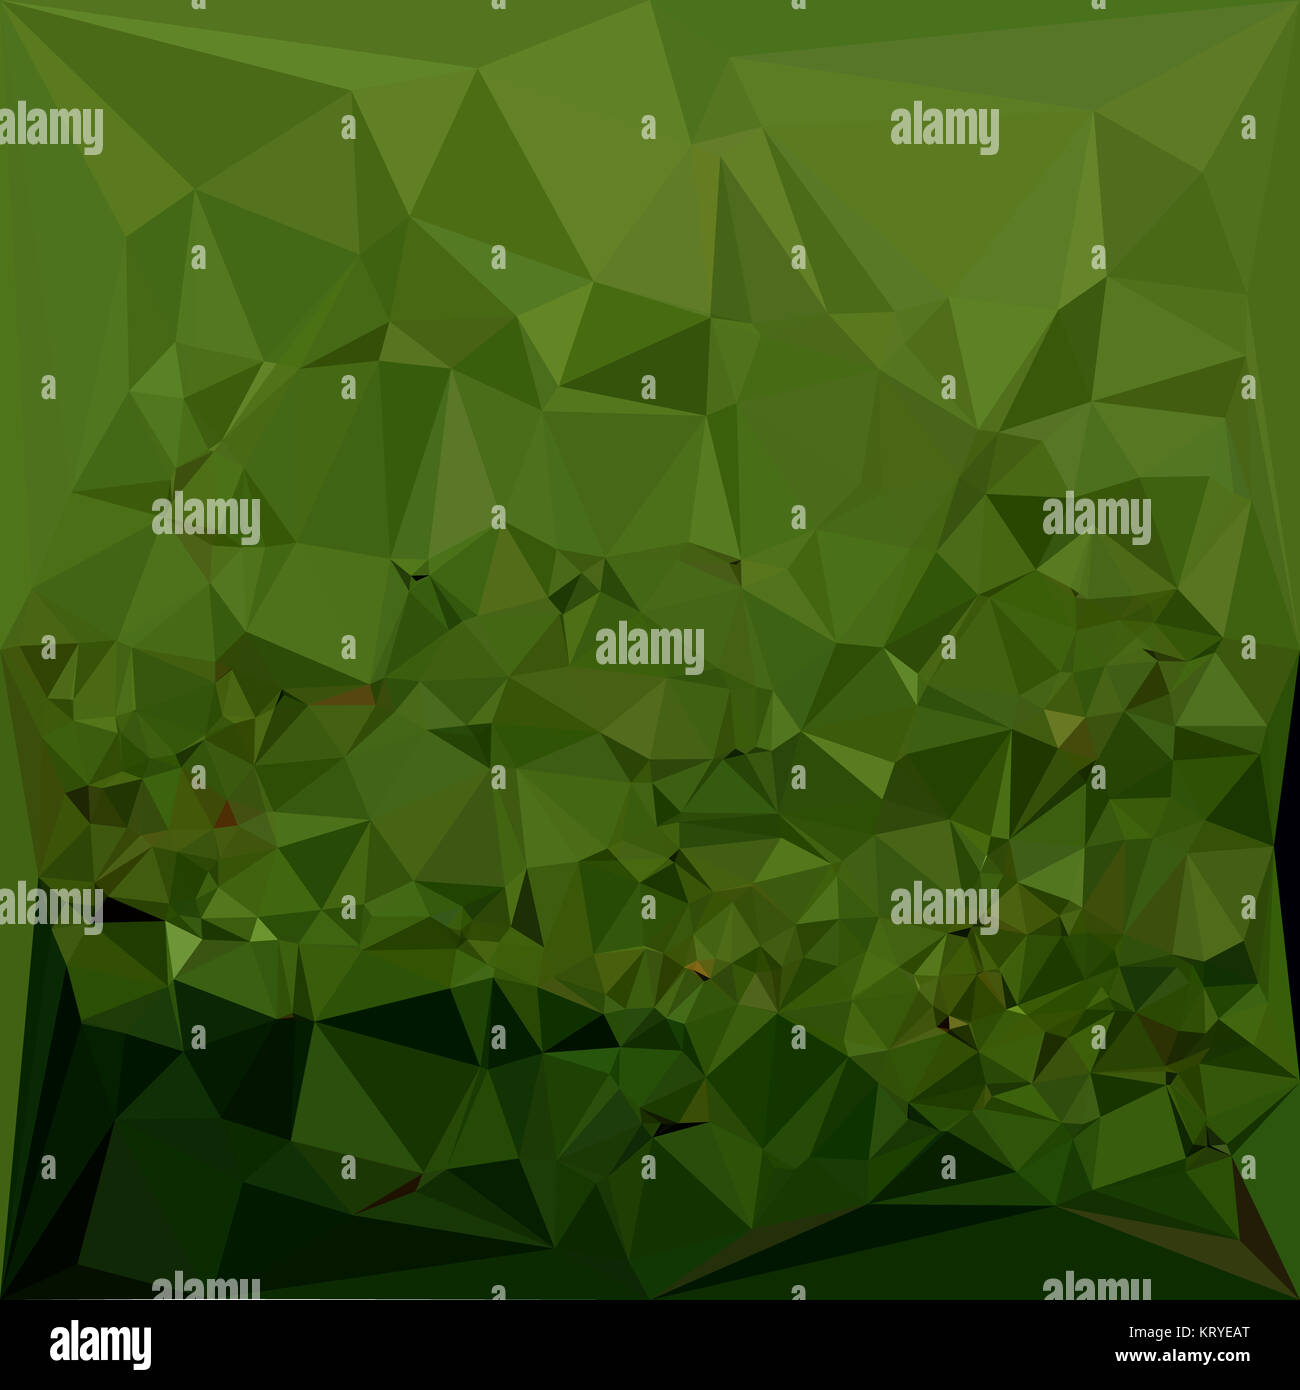 Chlorophyll Green Abstract Low Polygon Background - Stock Image